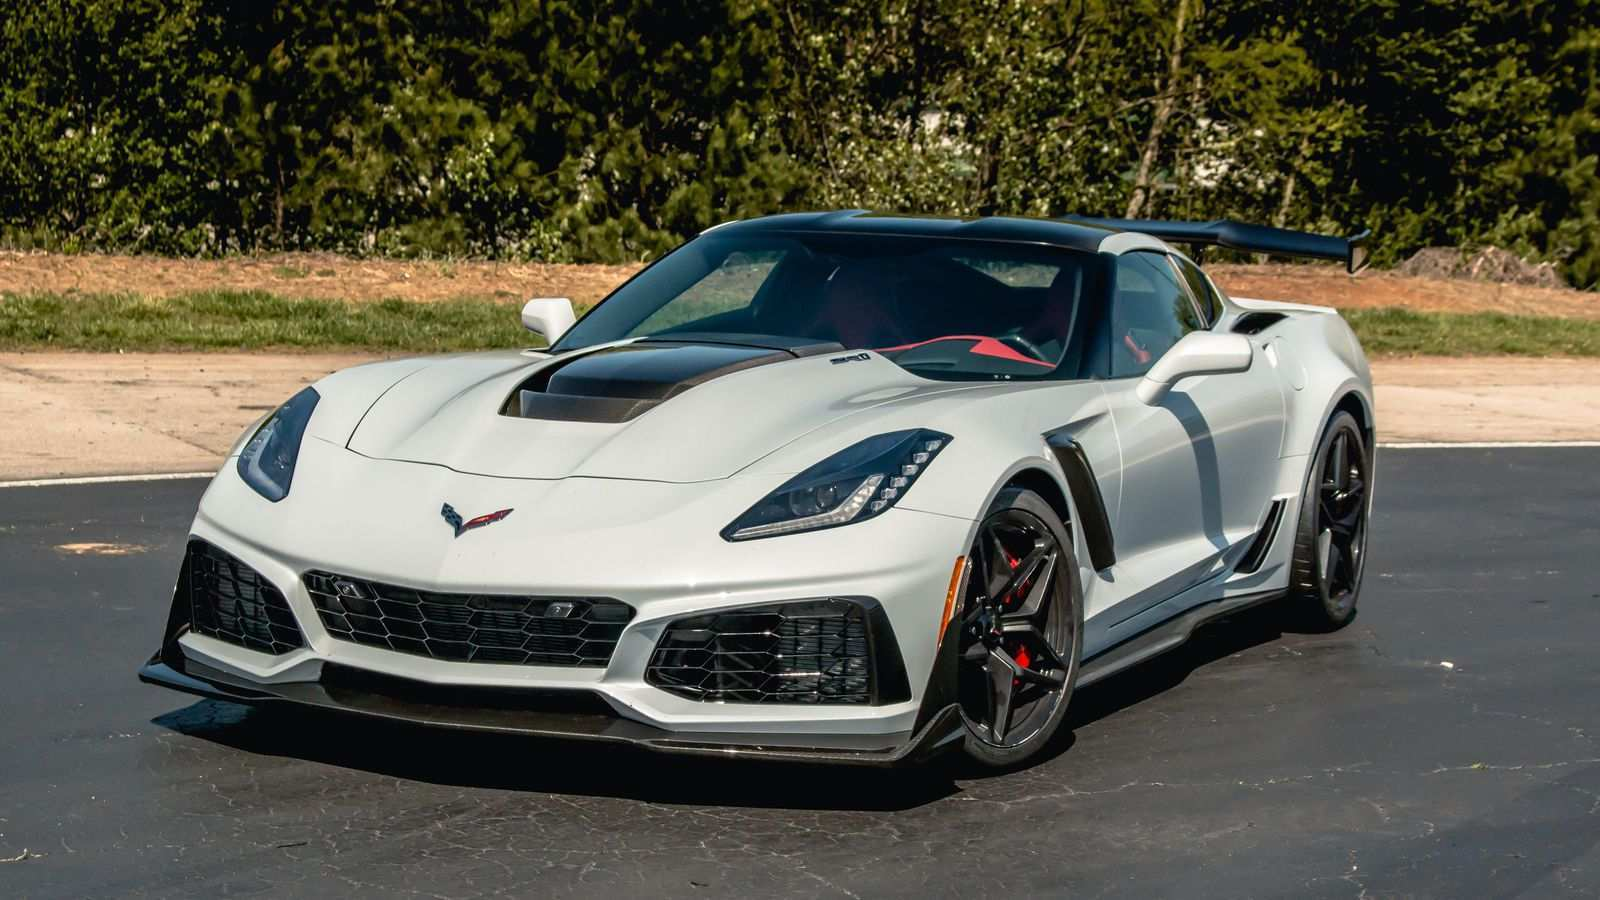 56 The Best 2019 Corvette ZR1 Interior